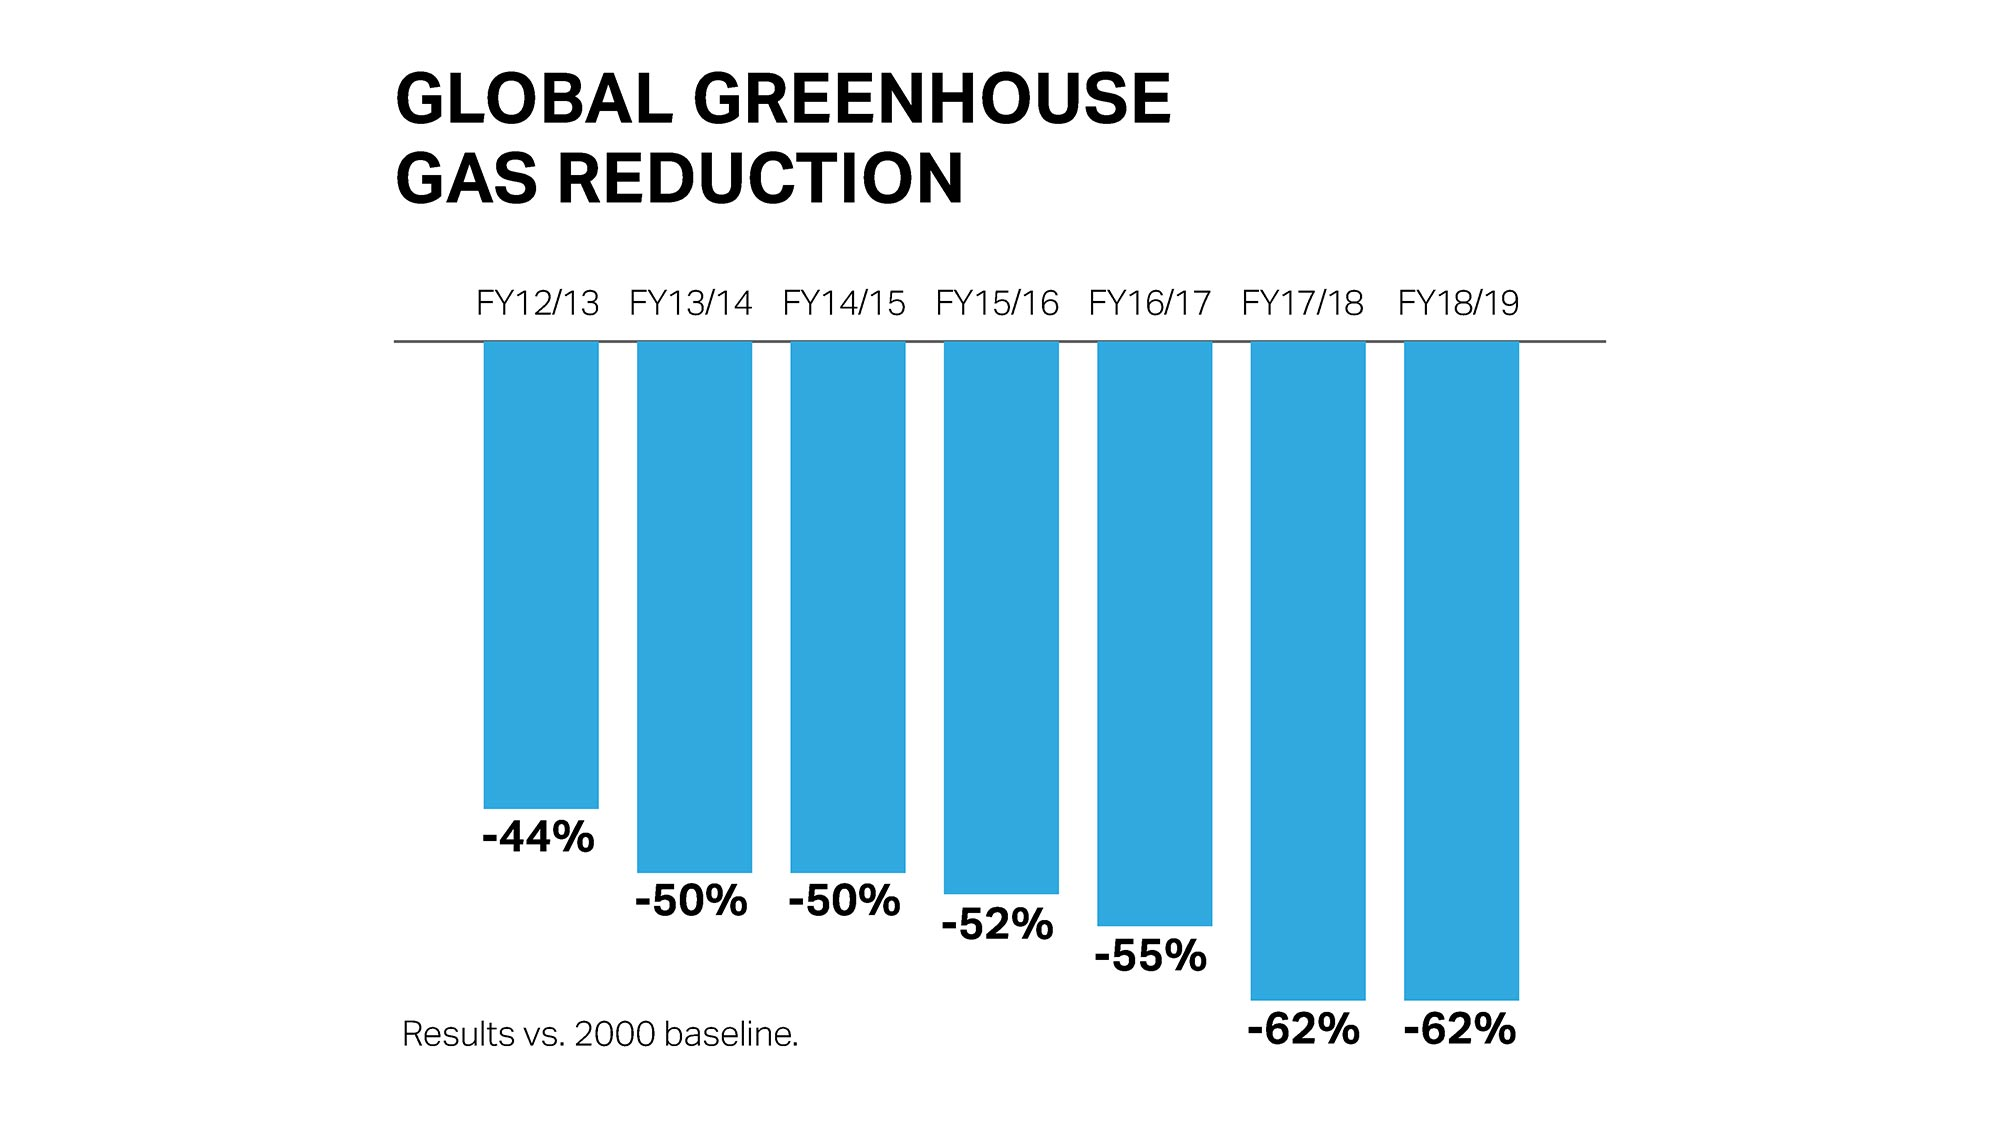 green house gas graph showing year over year reduction